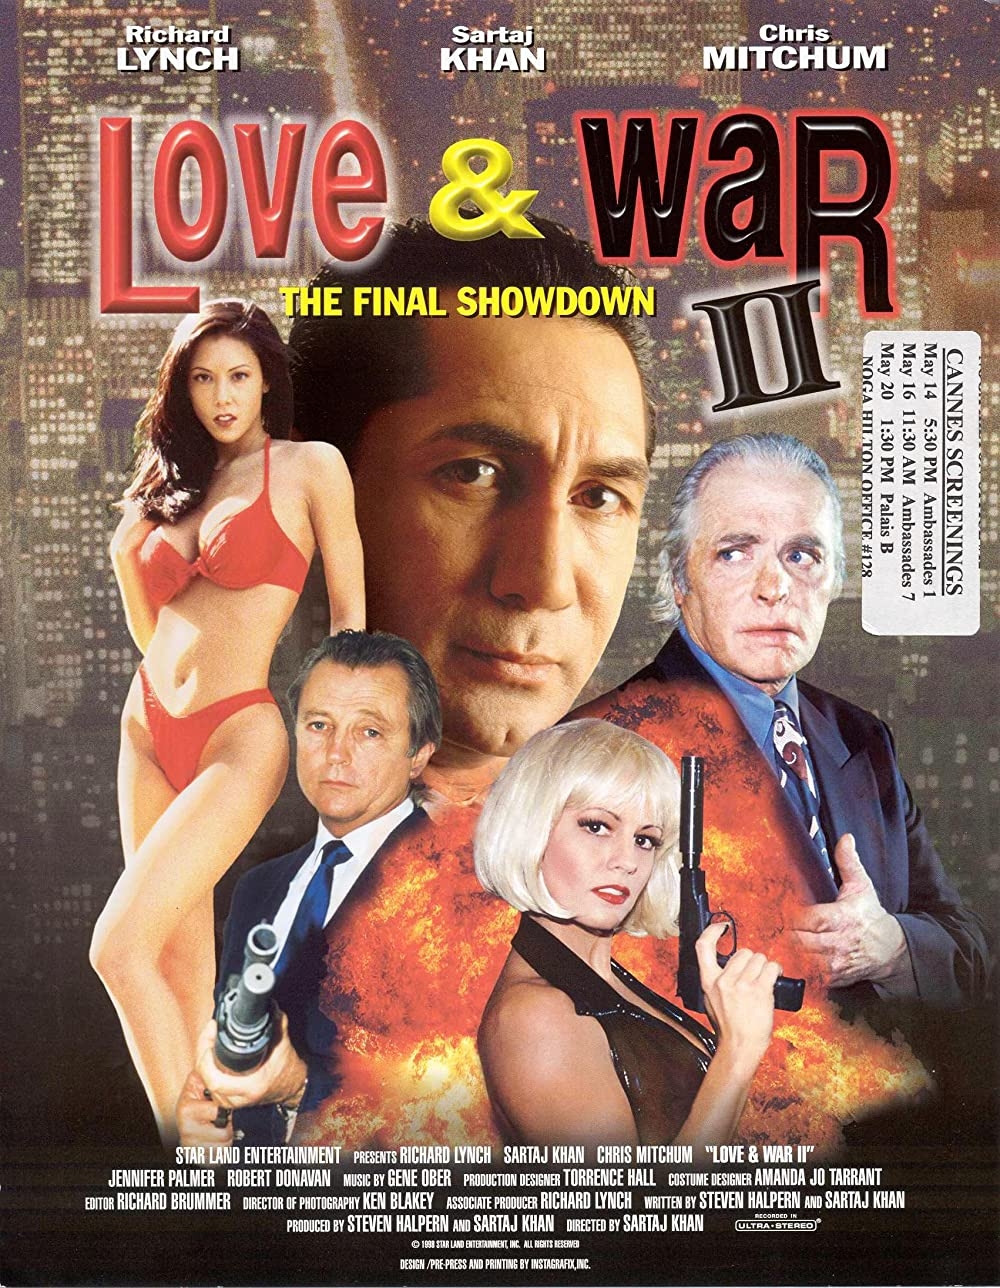 18+ Love and War II (1998) Hindi Dual Audio 720p UNRATED DVDRip 1.2GB x264 AAC